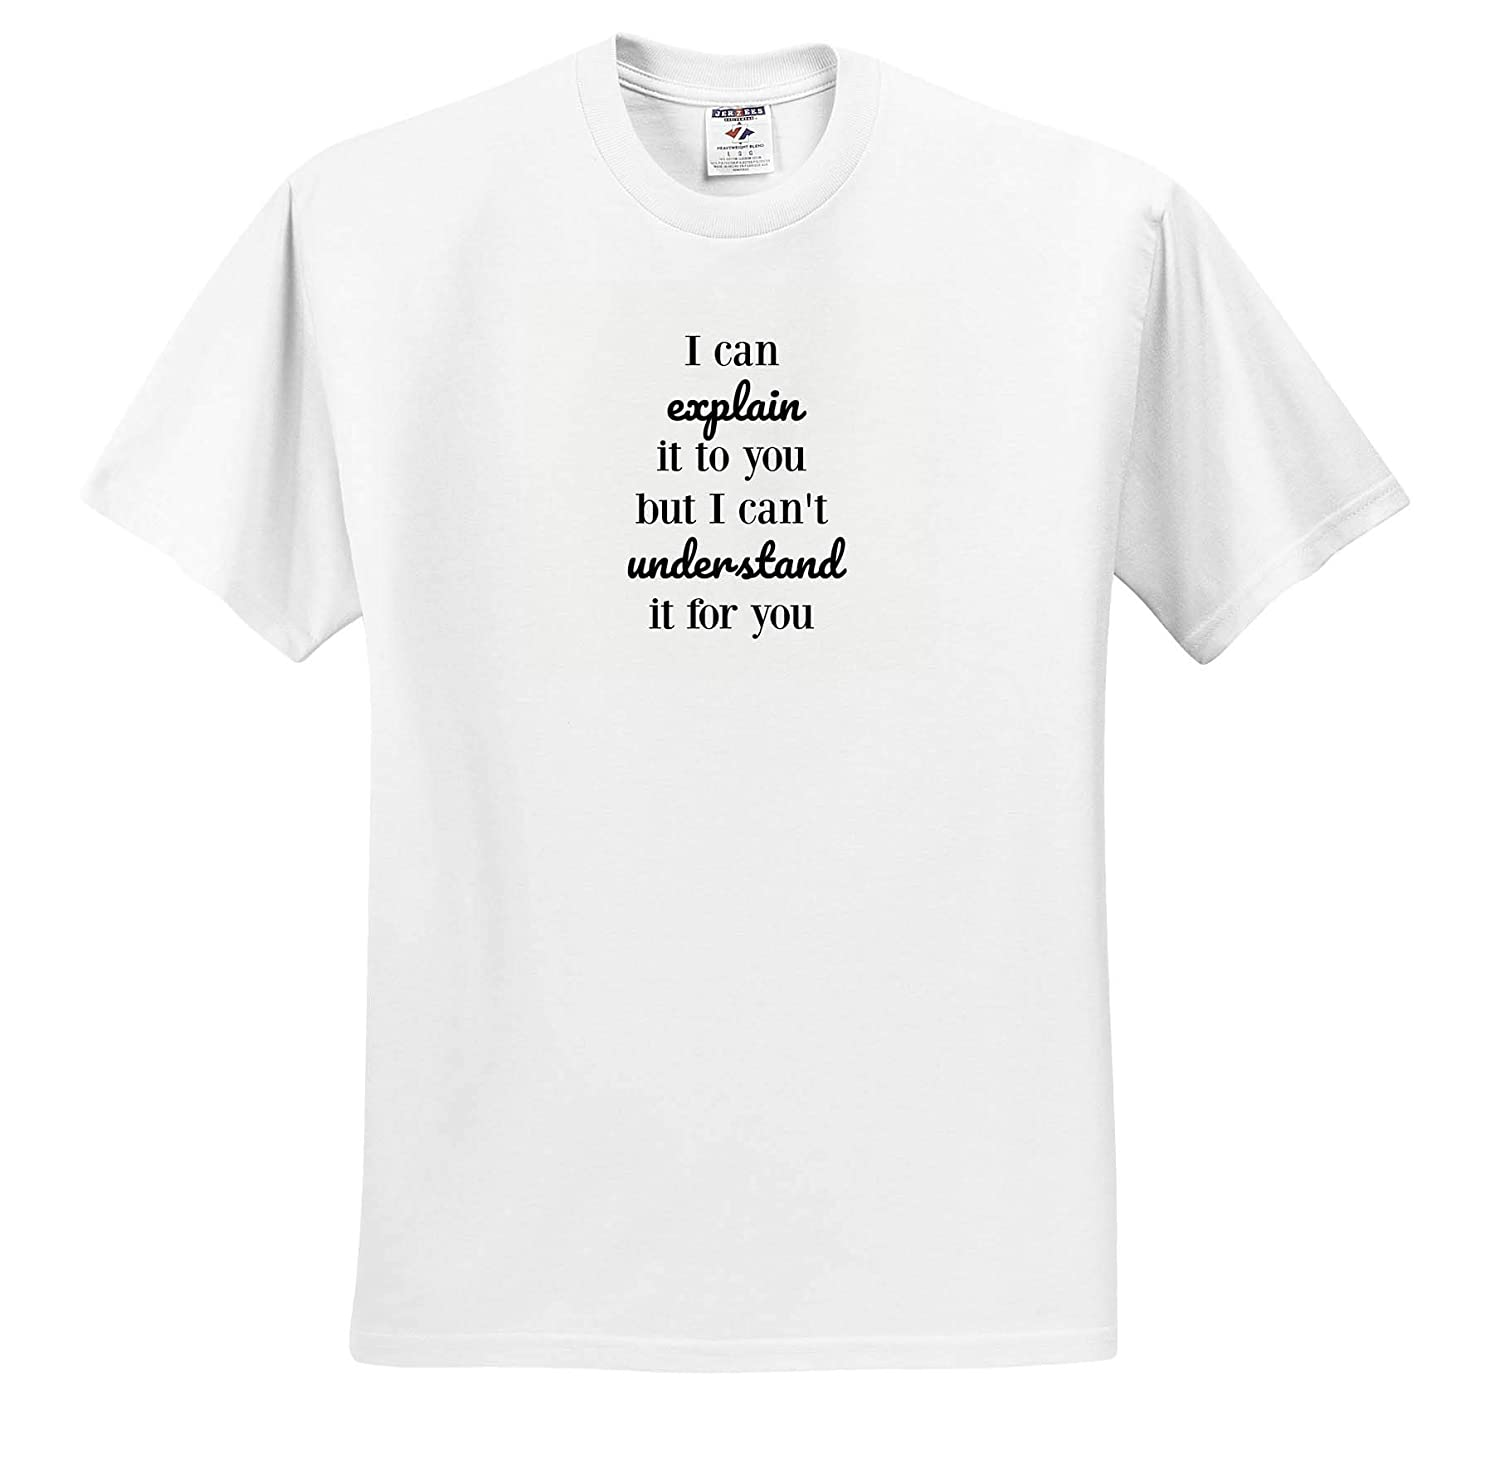 T-Shirts Image of I Can Explain It to You But I Cant Understand It Quote 3dRose Gabriella B Quote